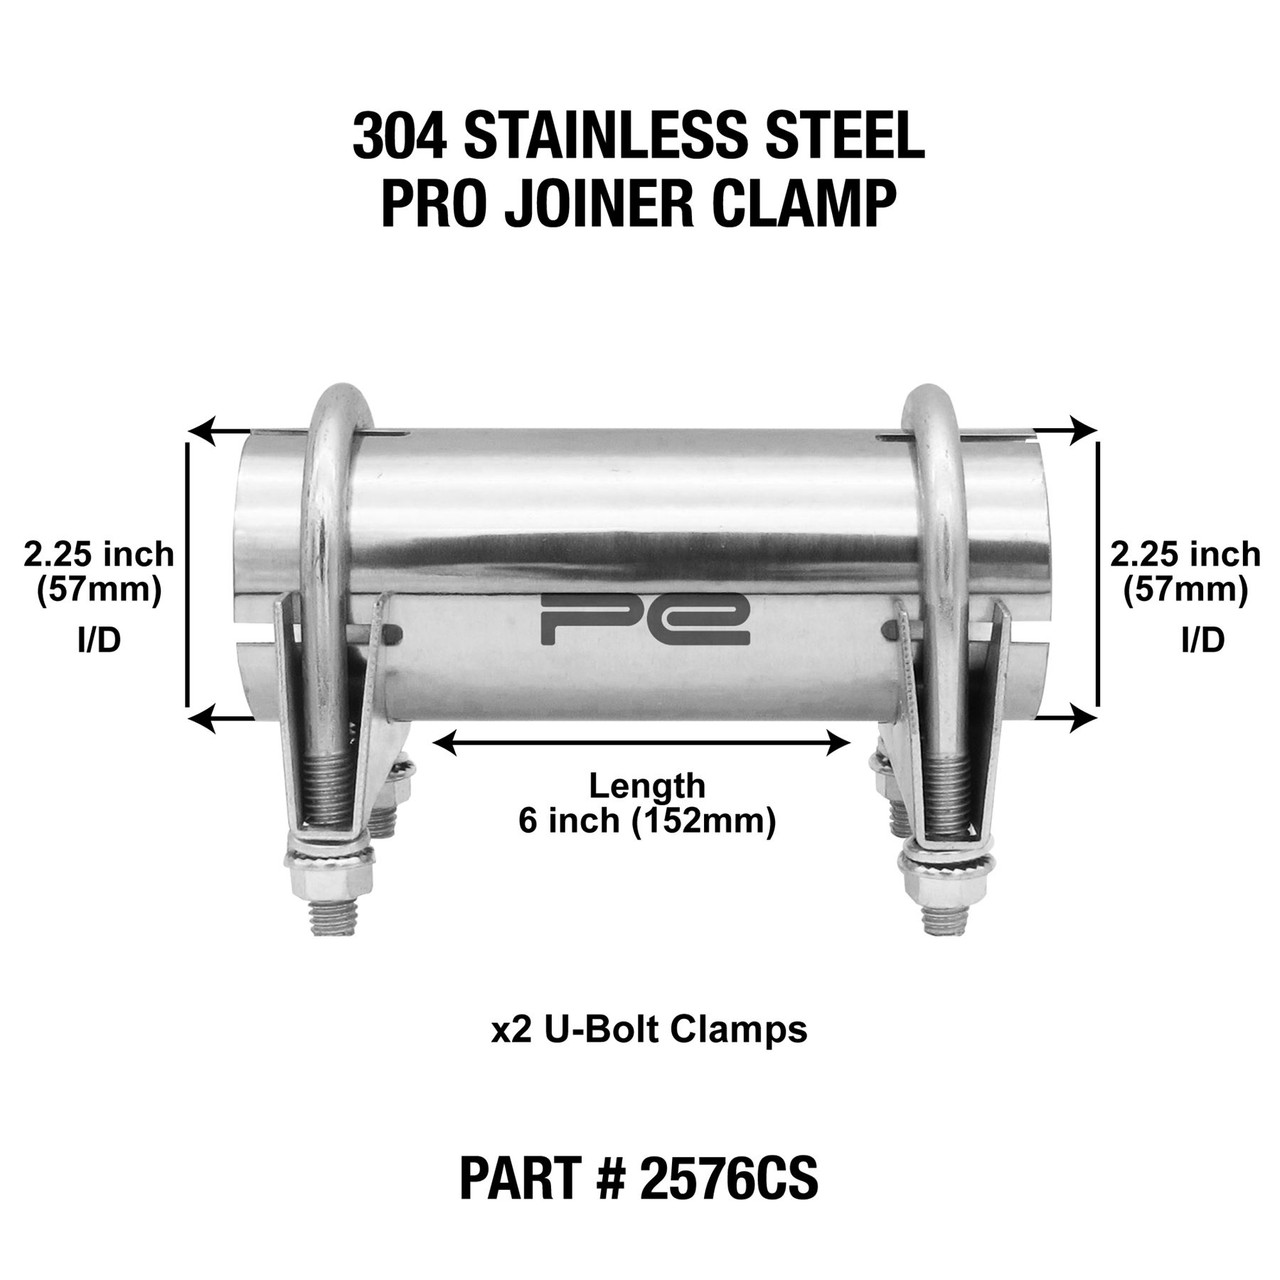 2 25 57mm 304 stainless steel clamp exhaust pipe joiner connector sleeve repair